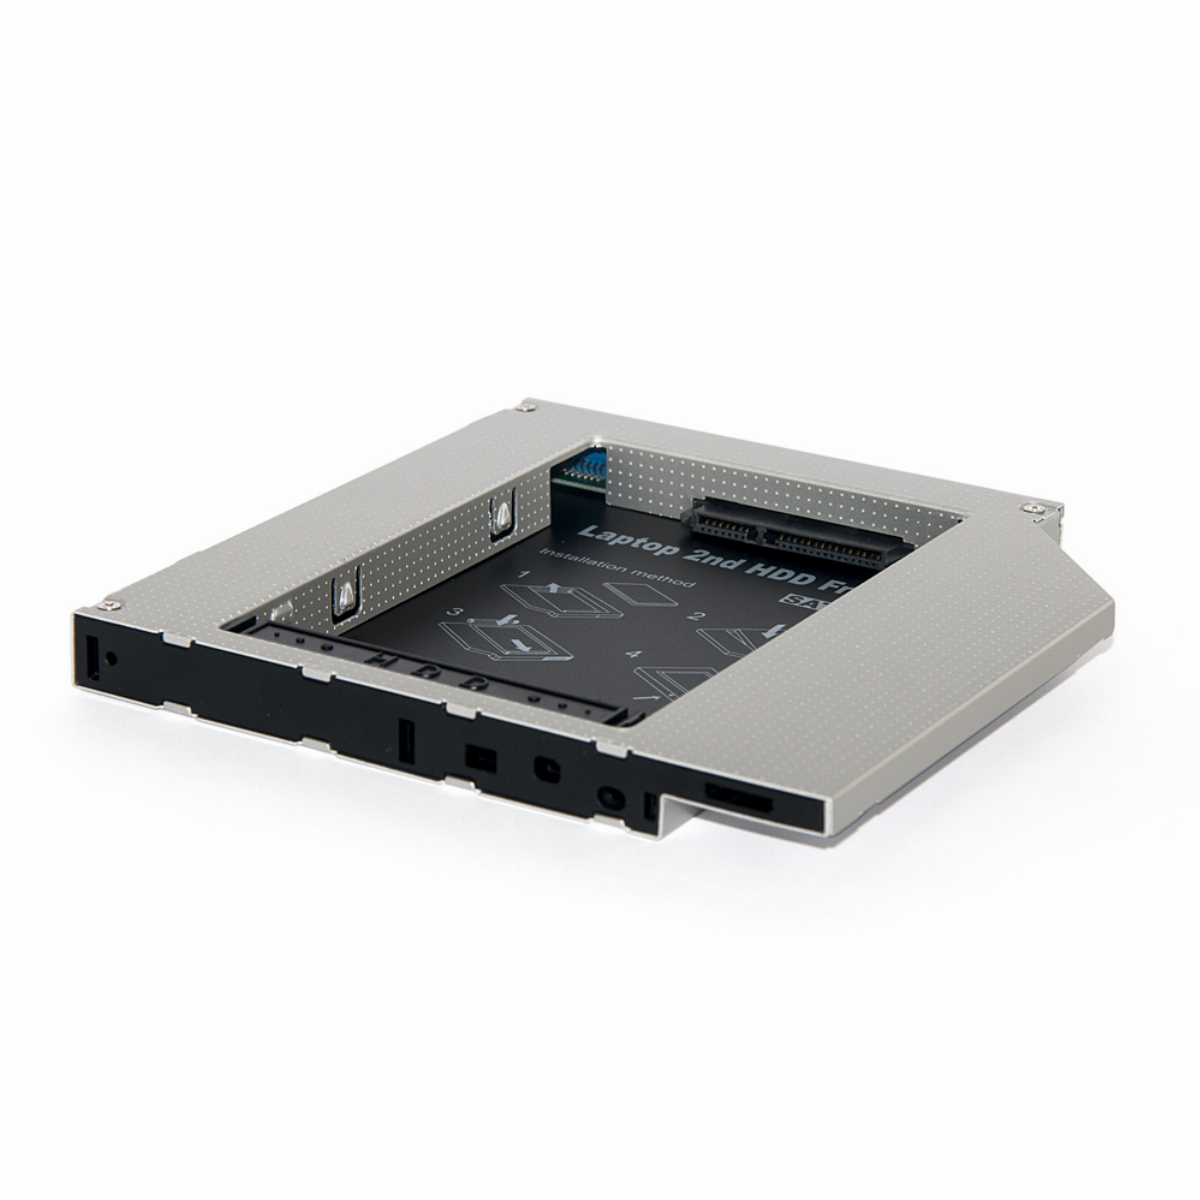 OEM Чекмедже Laptop Caddy 9.5mm SATA/SATA3 2nd hdd/ssd on optical DVD slot